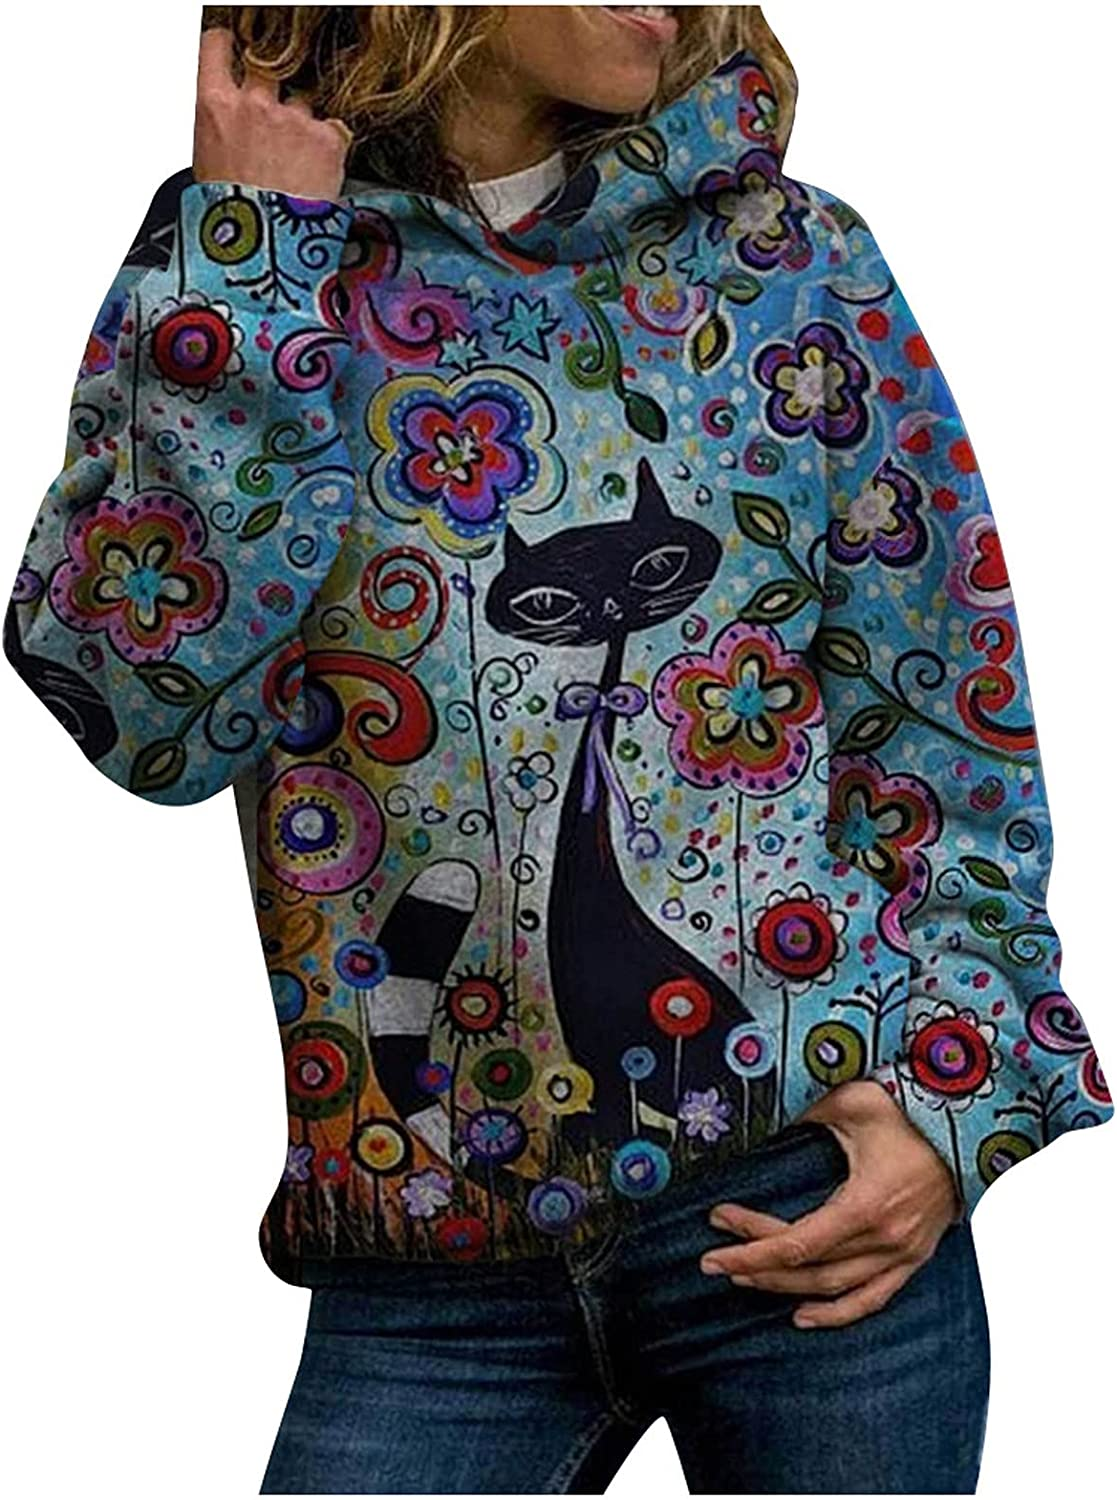 Hoodies for Women Pullover Tops Fashion Animal Cat Printed Comfy Long Sleeve Hooded Sweatshirts Coat Blouses